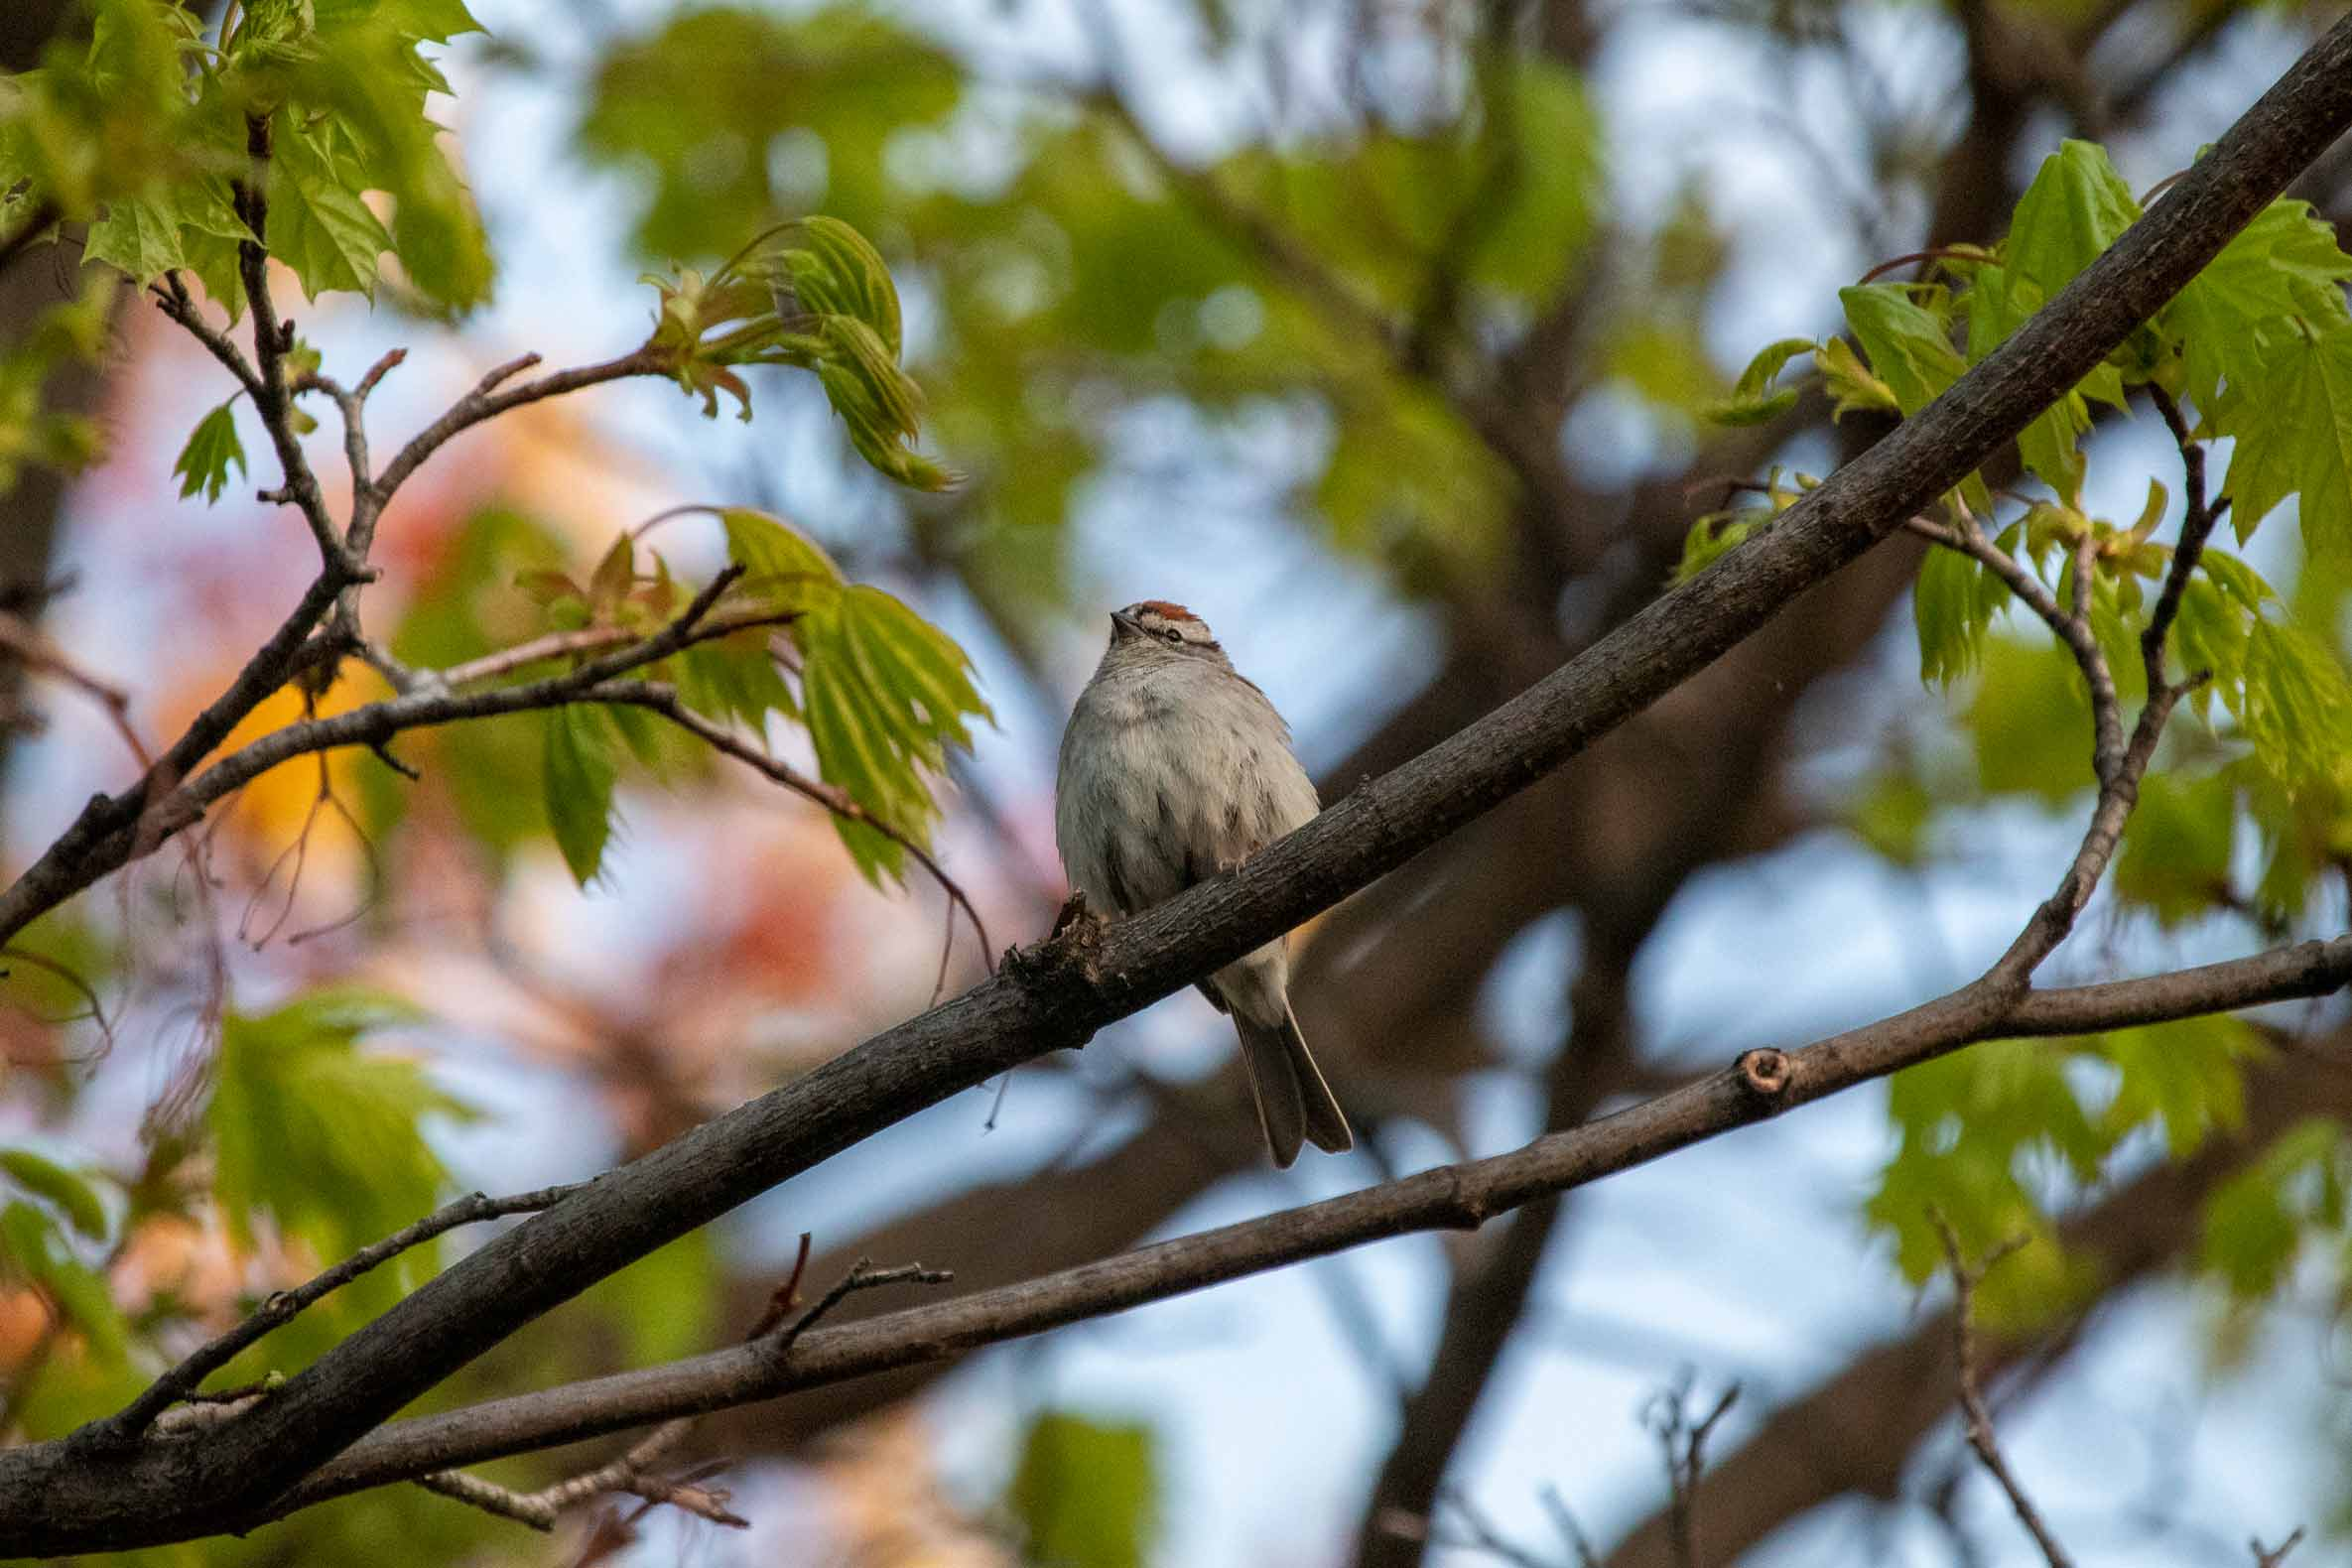 Sparrow sitting in a tree